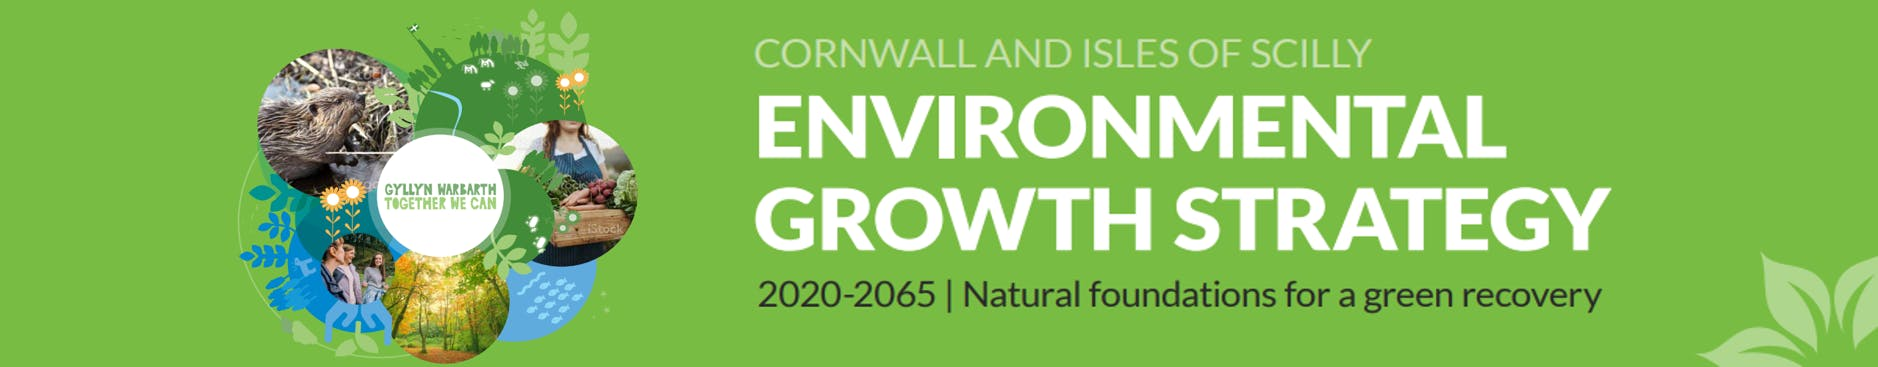 Cornwall & Isles of Scilly Environmental Growth Strategy 2020-2065 banner image